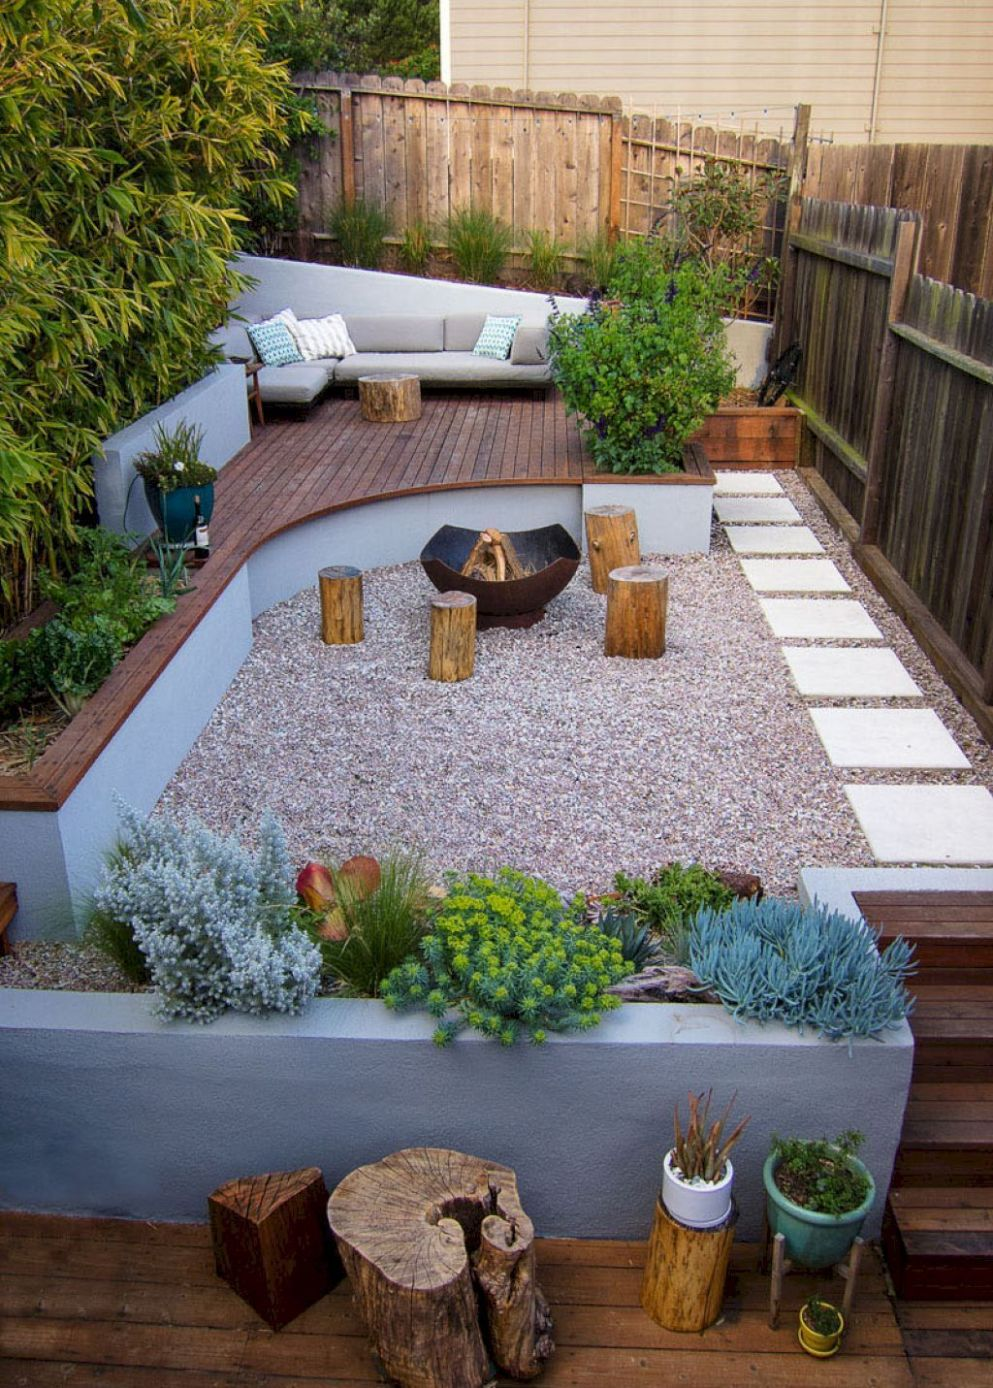 10 Stunning Backyard Ideas On a Budget You Will Love   Small ..